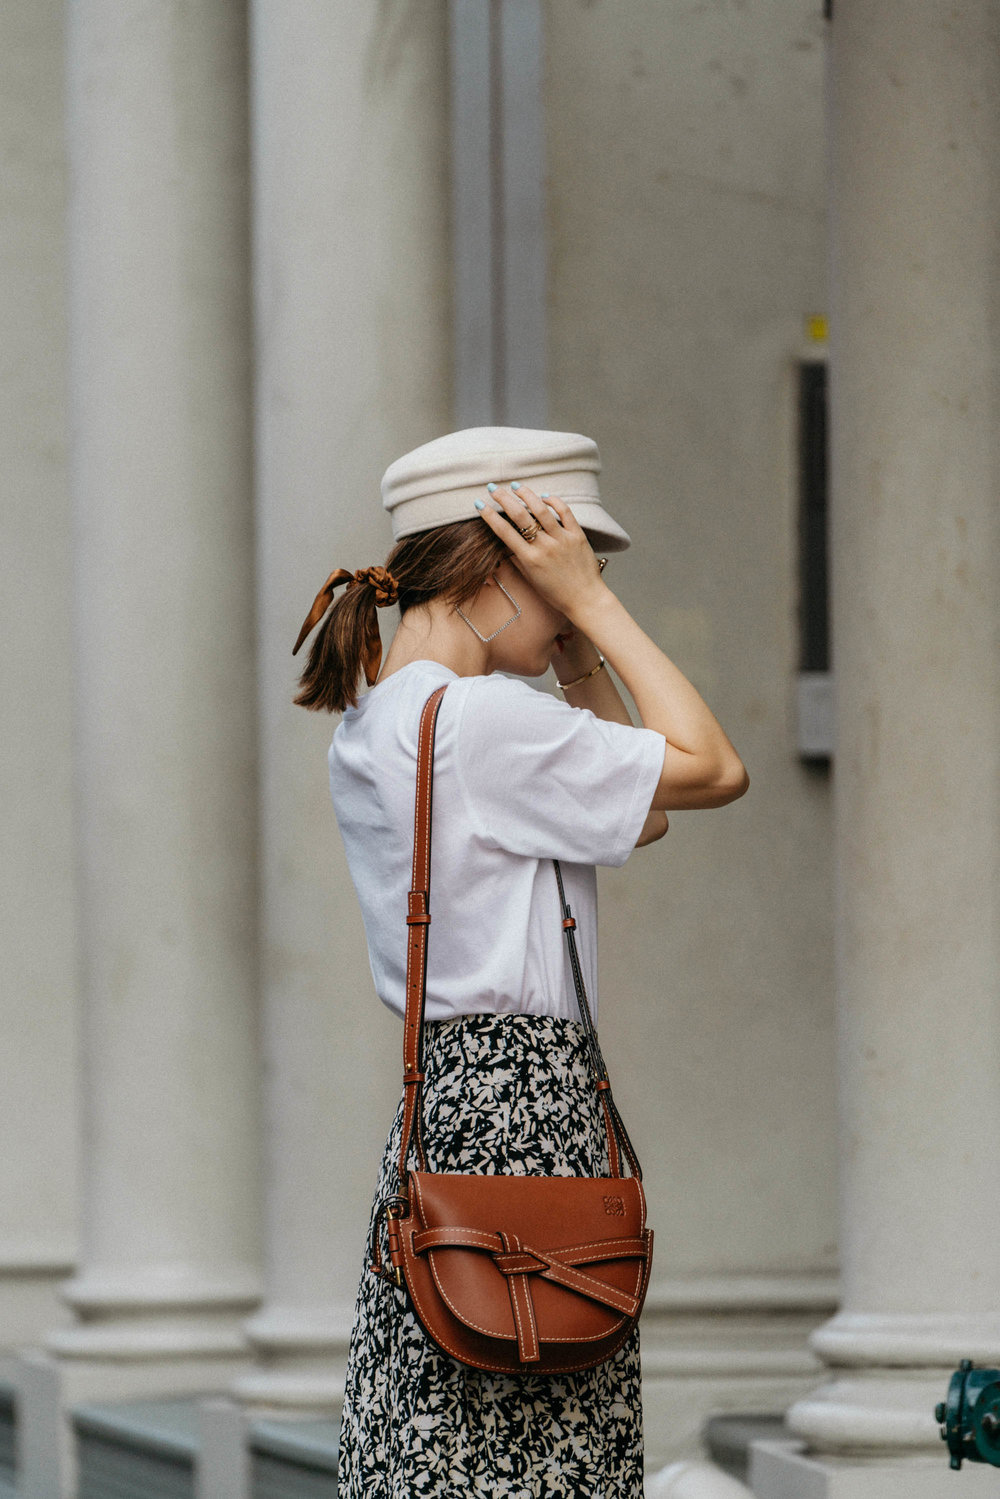 Common Odds Shirt,  Proenza Schouler Skirt,  Loewe Bag ,  Ruslan Baginskiy Hat ,  Donni Scrunchie ,  AREA Earrings